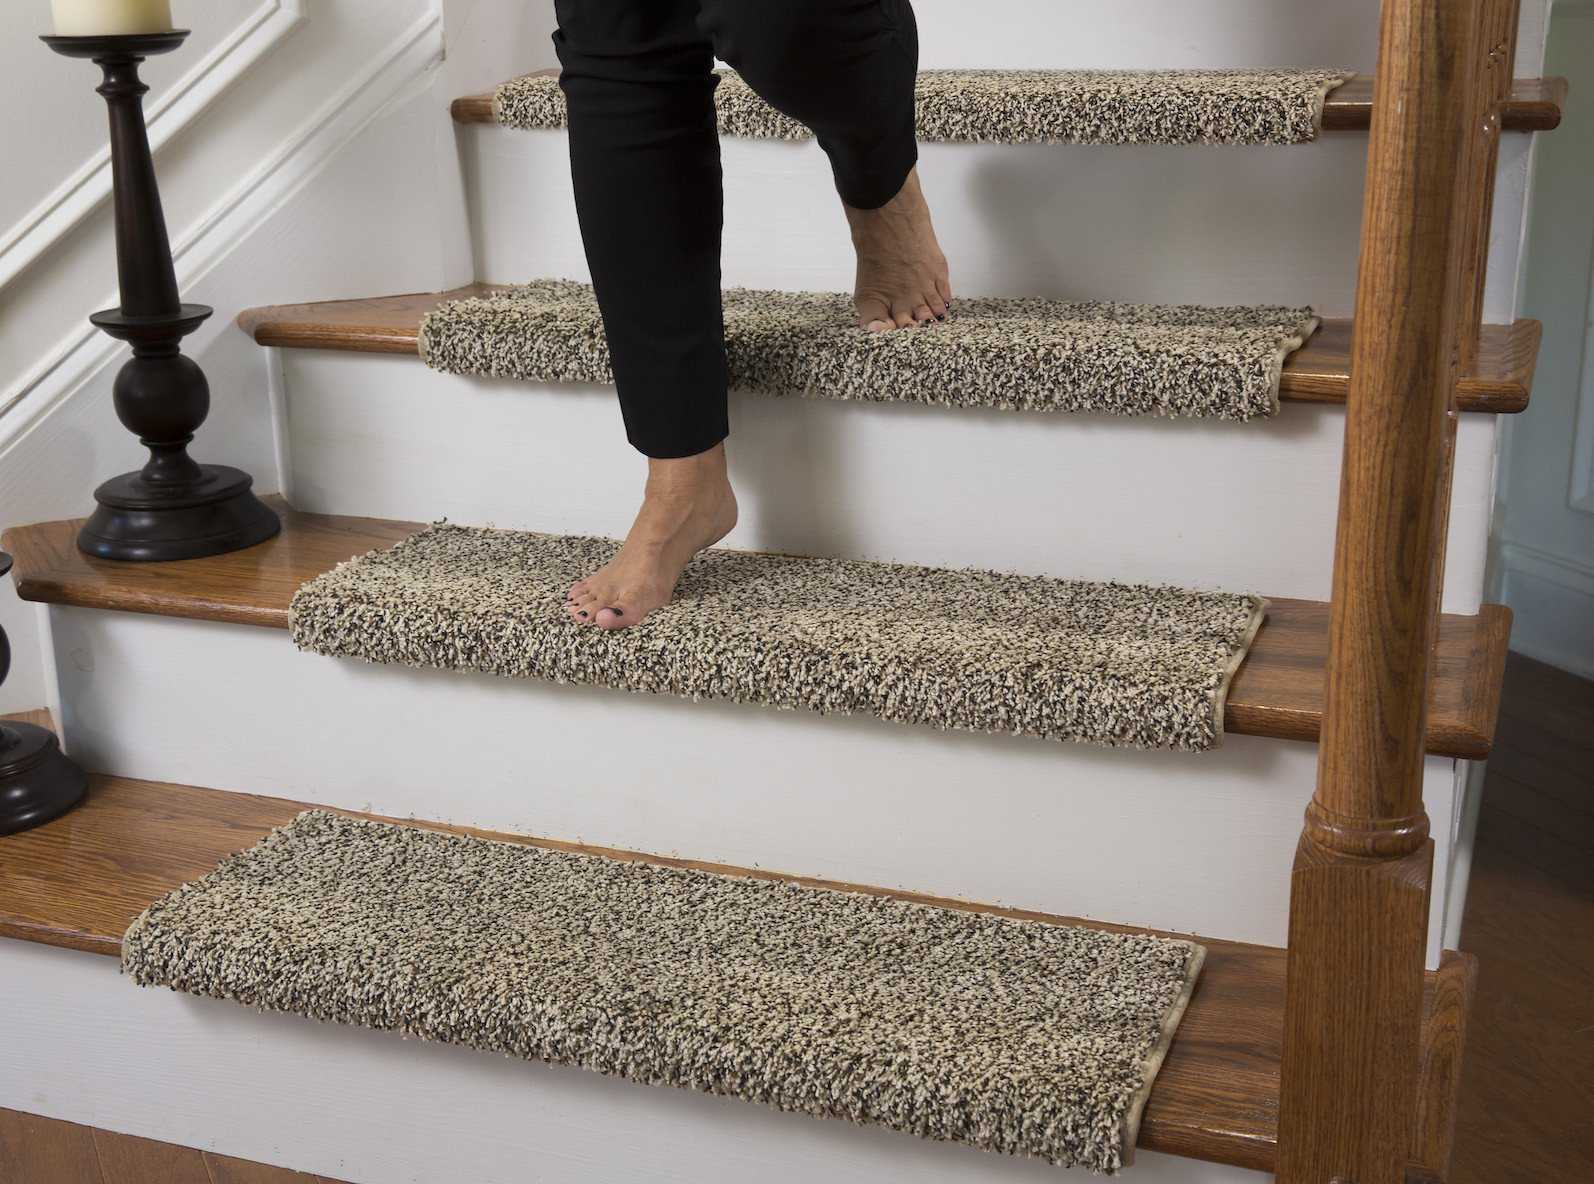 Caprice Beach Bum Bullnose Carpet Stair Tread with Adhesive Padding - 27' Wide, 10' Deep